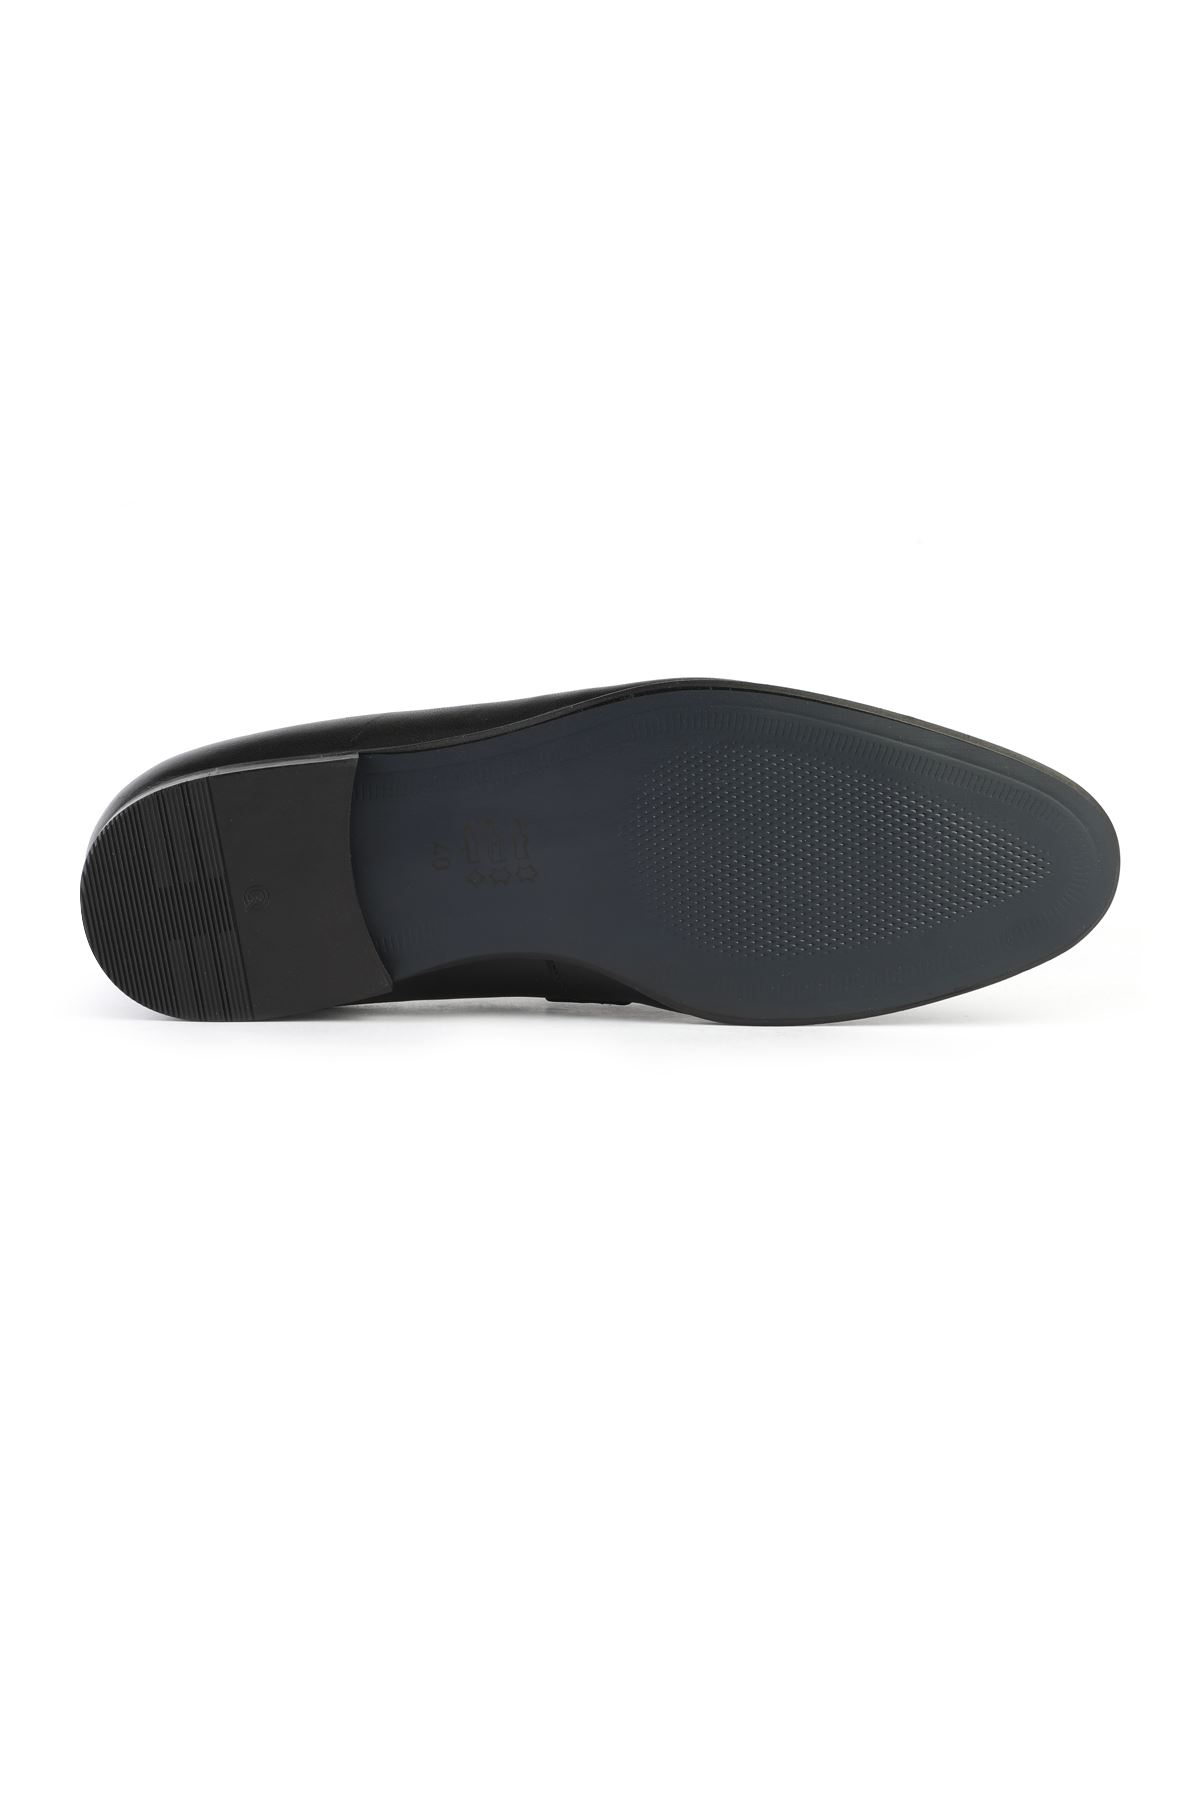 Libero 3270 Black Loafer Shoes